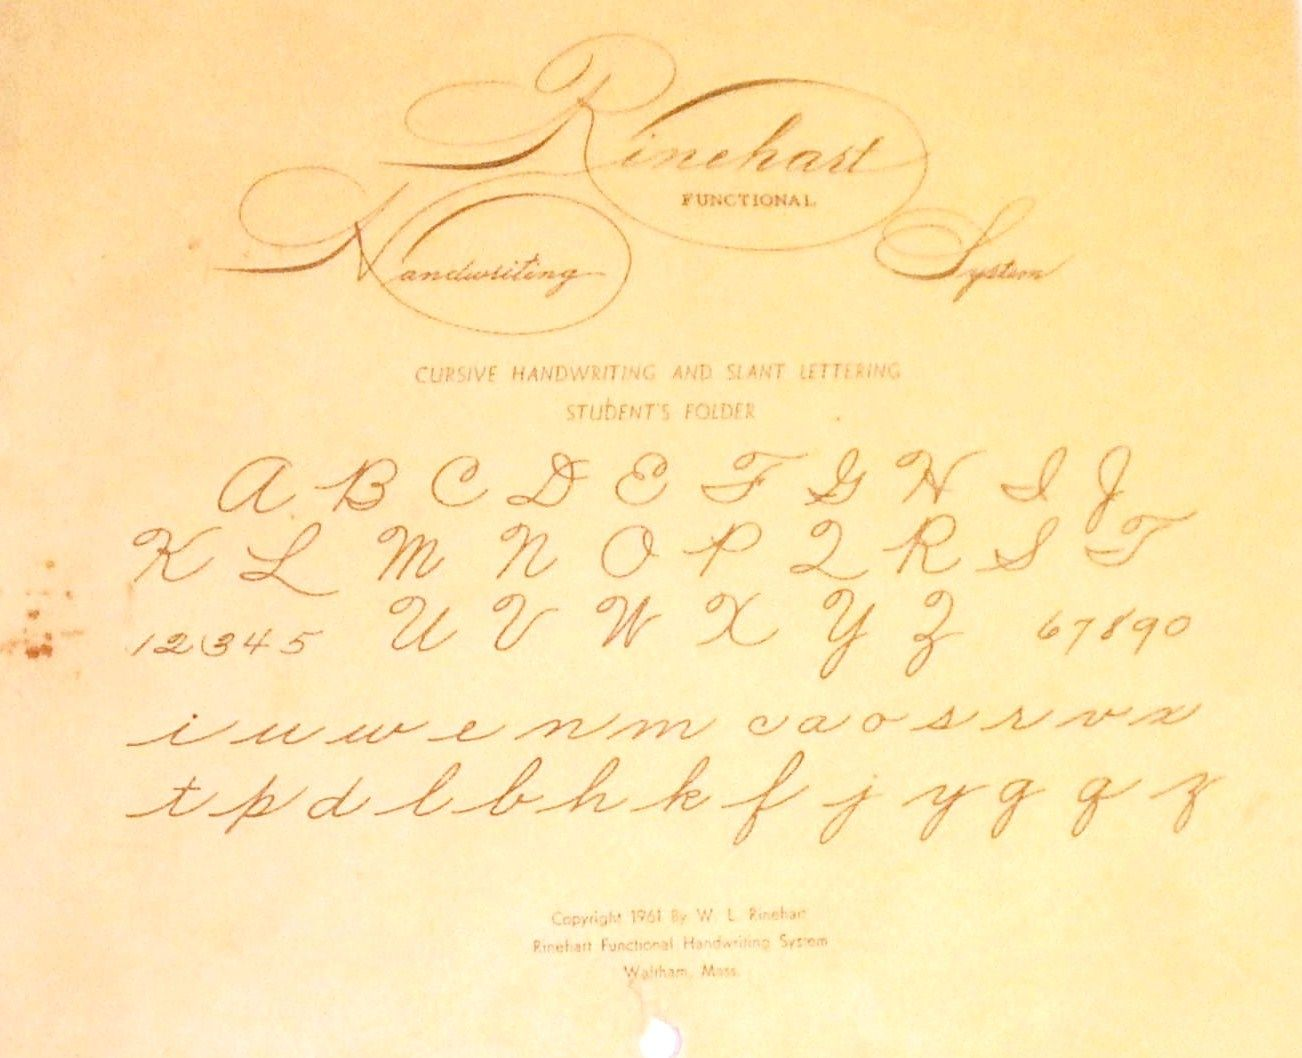 The Rinehart Handwriting System